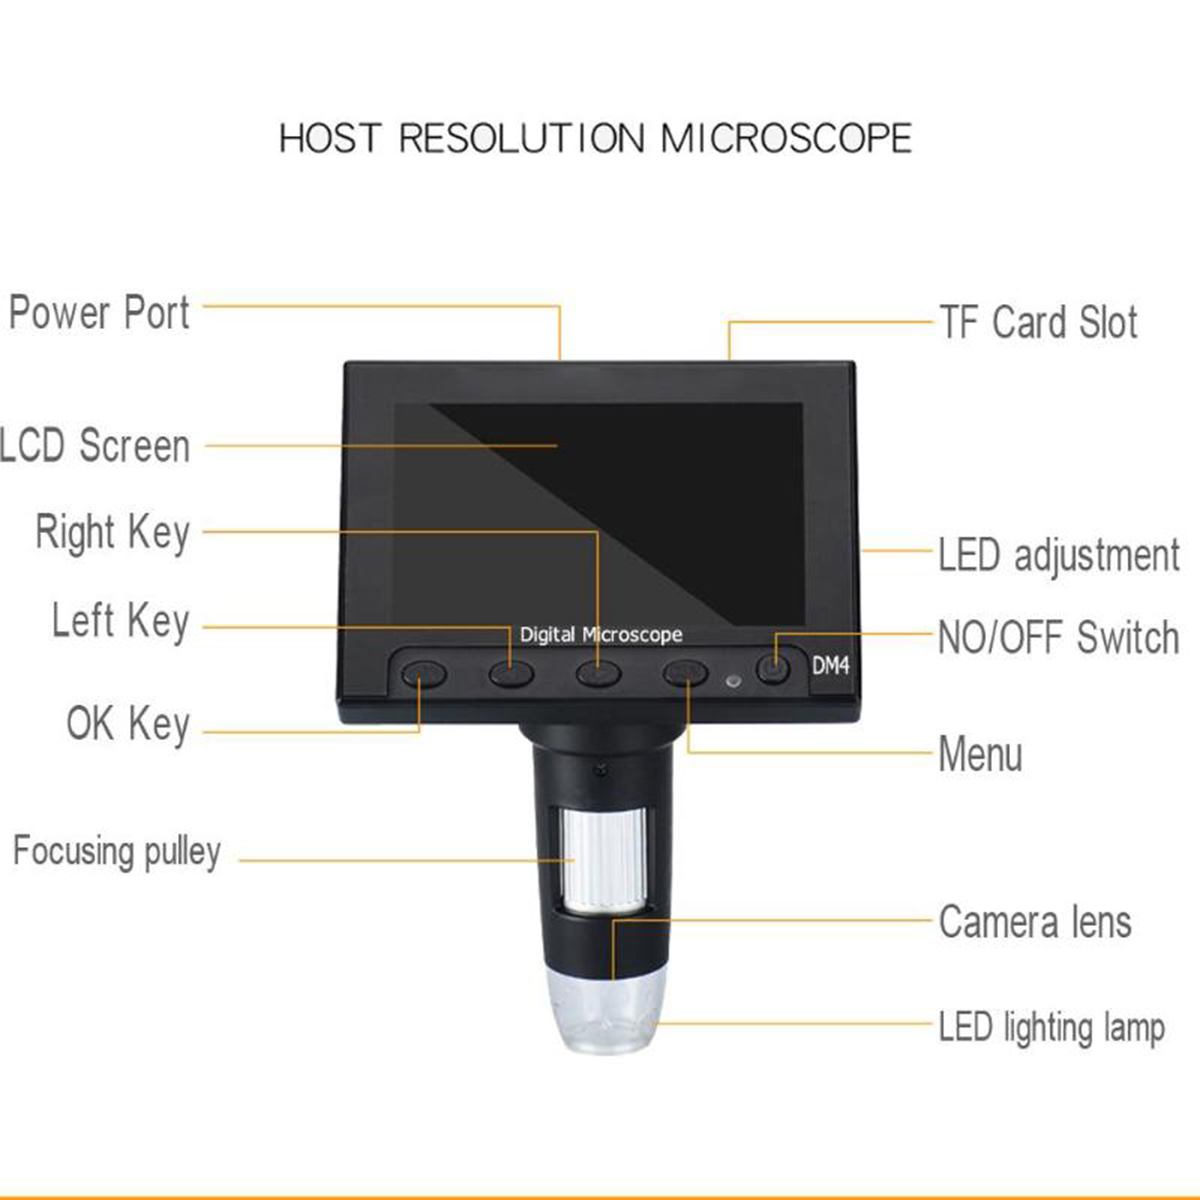 1000x Mega Pixels Digital Microscope with LCD Display and 8 LEDs Stand for Motherboard Repair 3